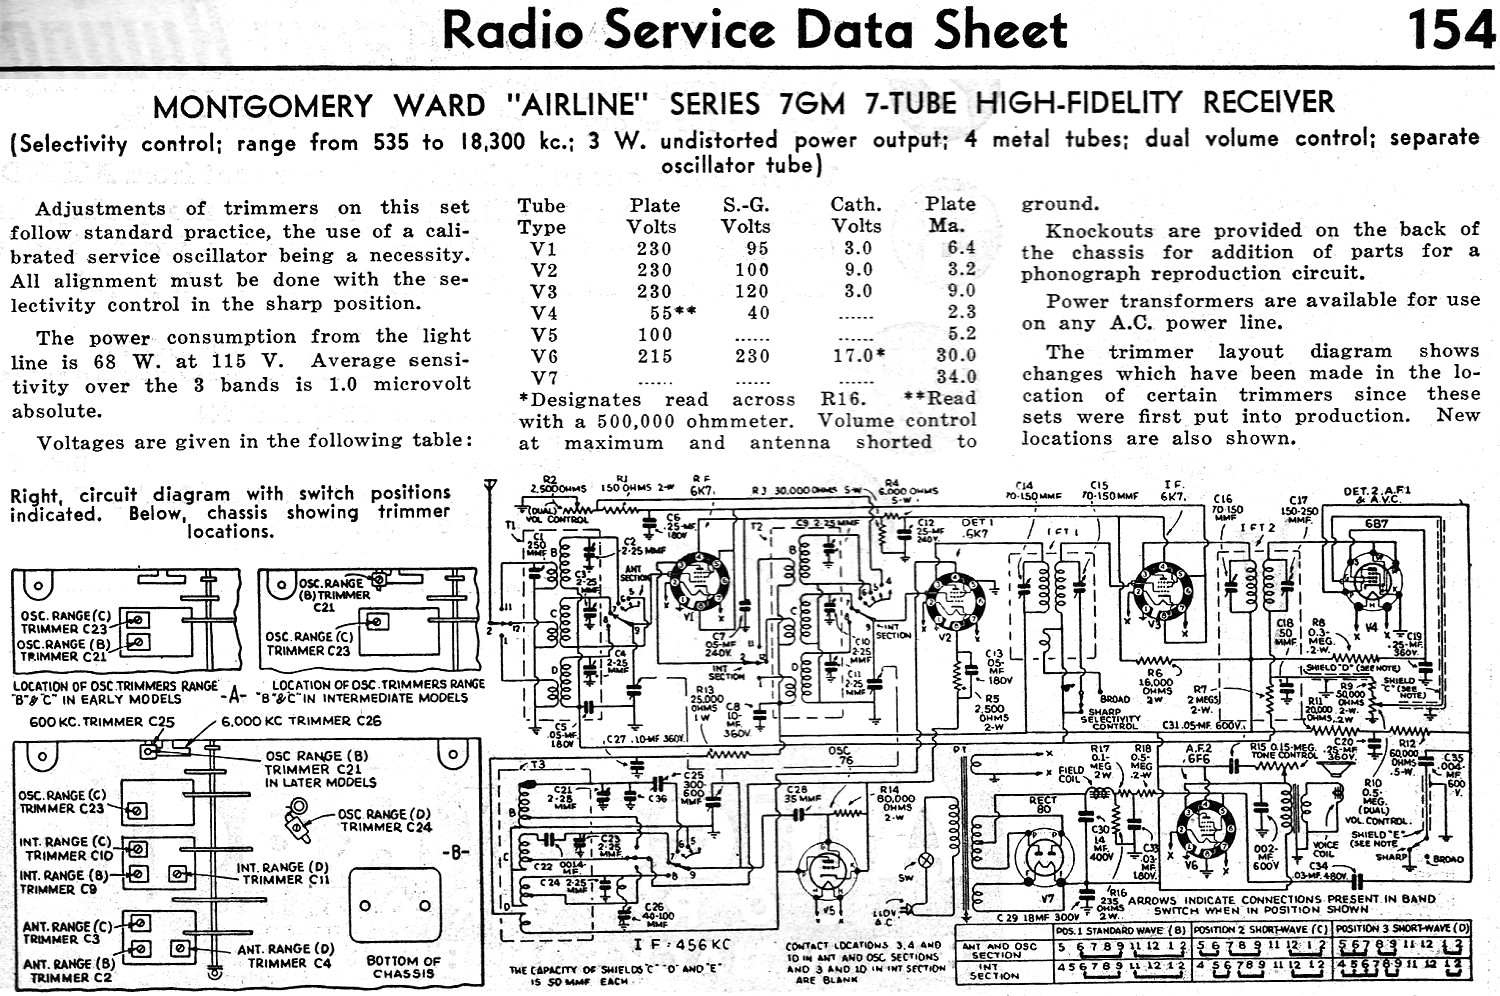 Tube Radio Schematic on air king, for model 6a66 sparton antique, rca victor 16x4, hybrid car, for unison high fidelity,